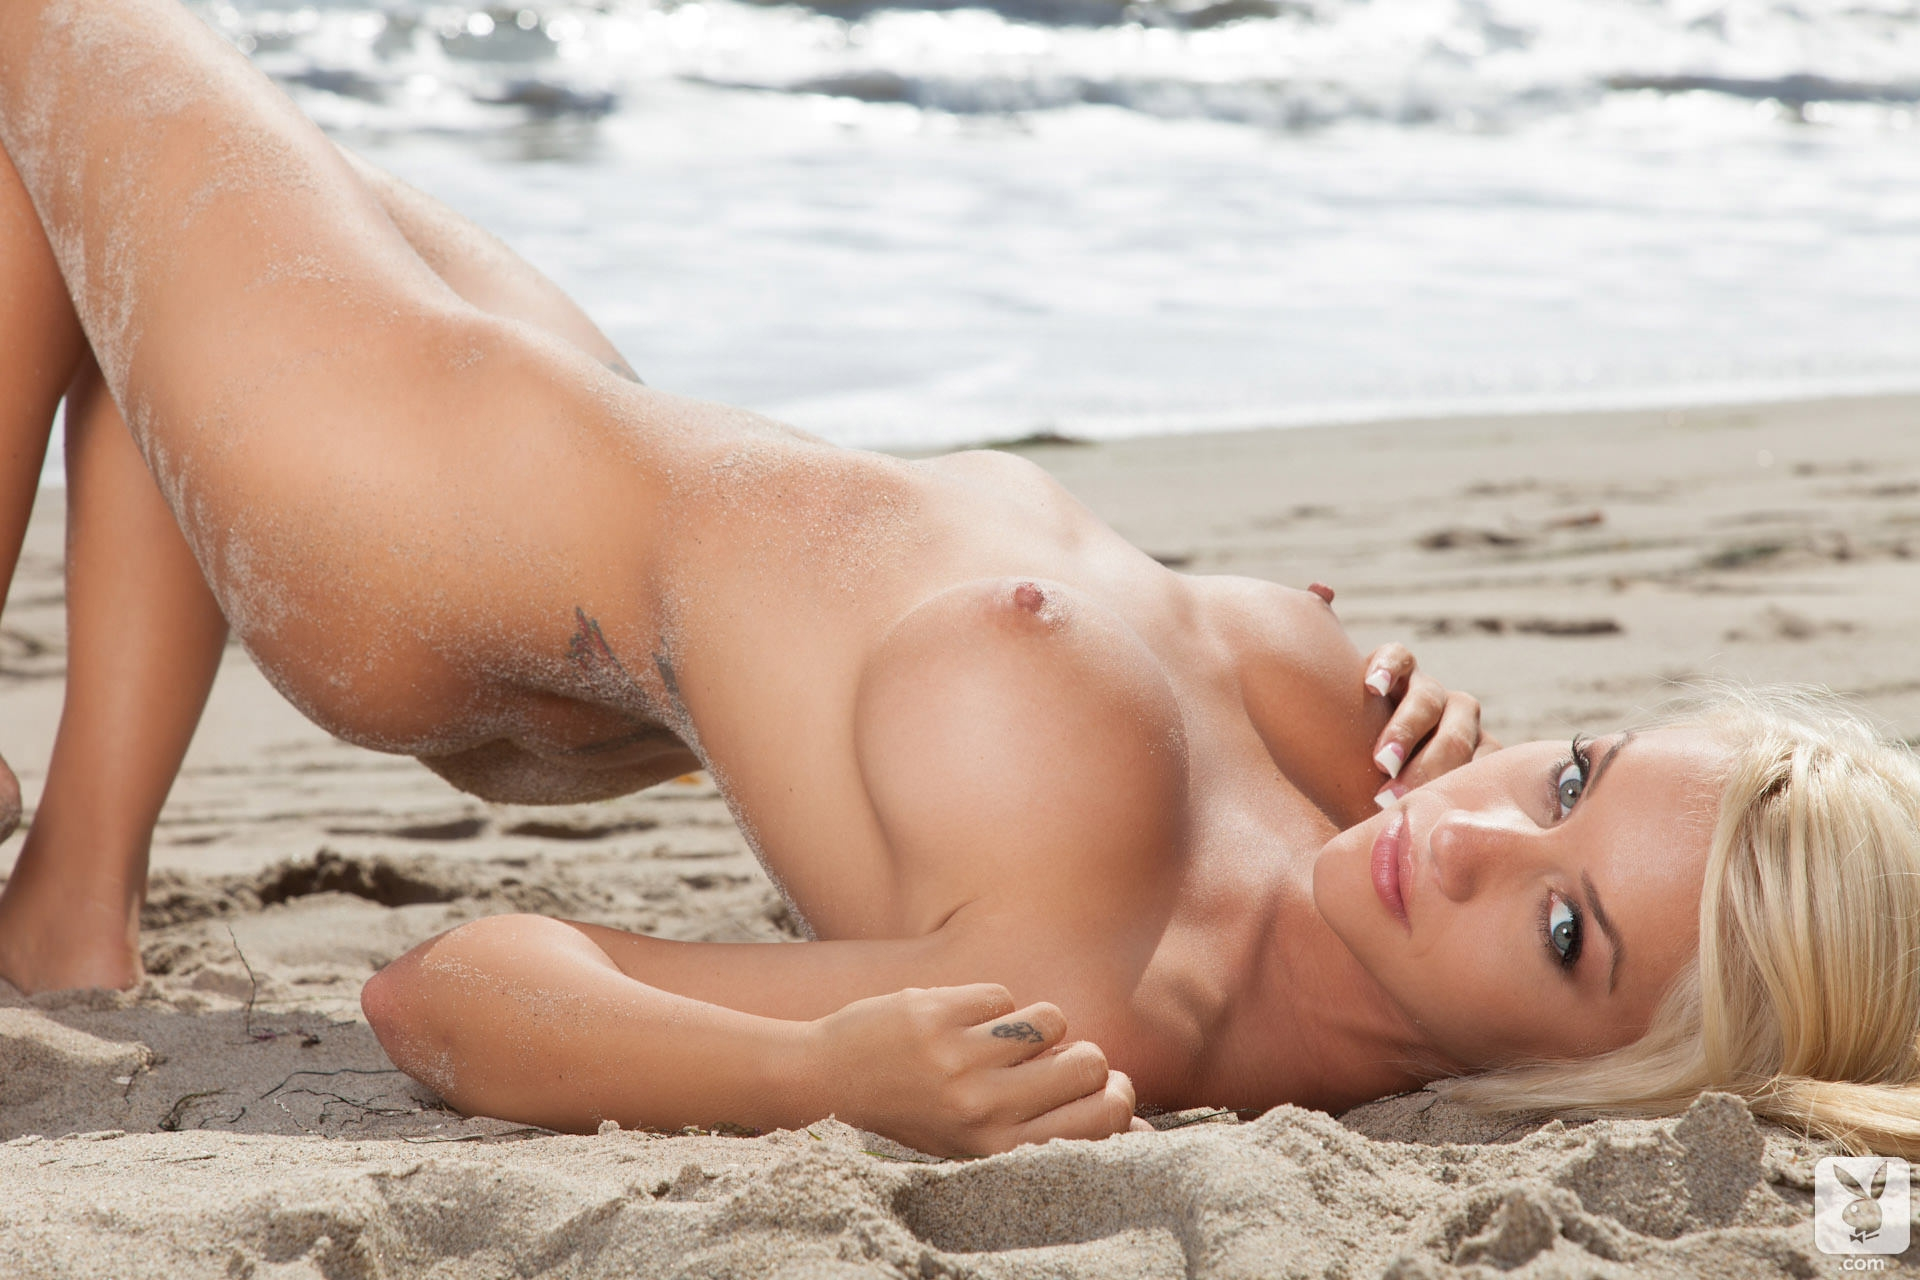 Sexy playboy nude beach girls